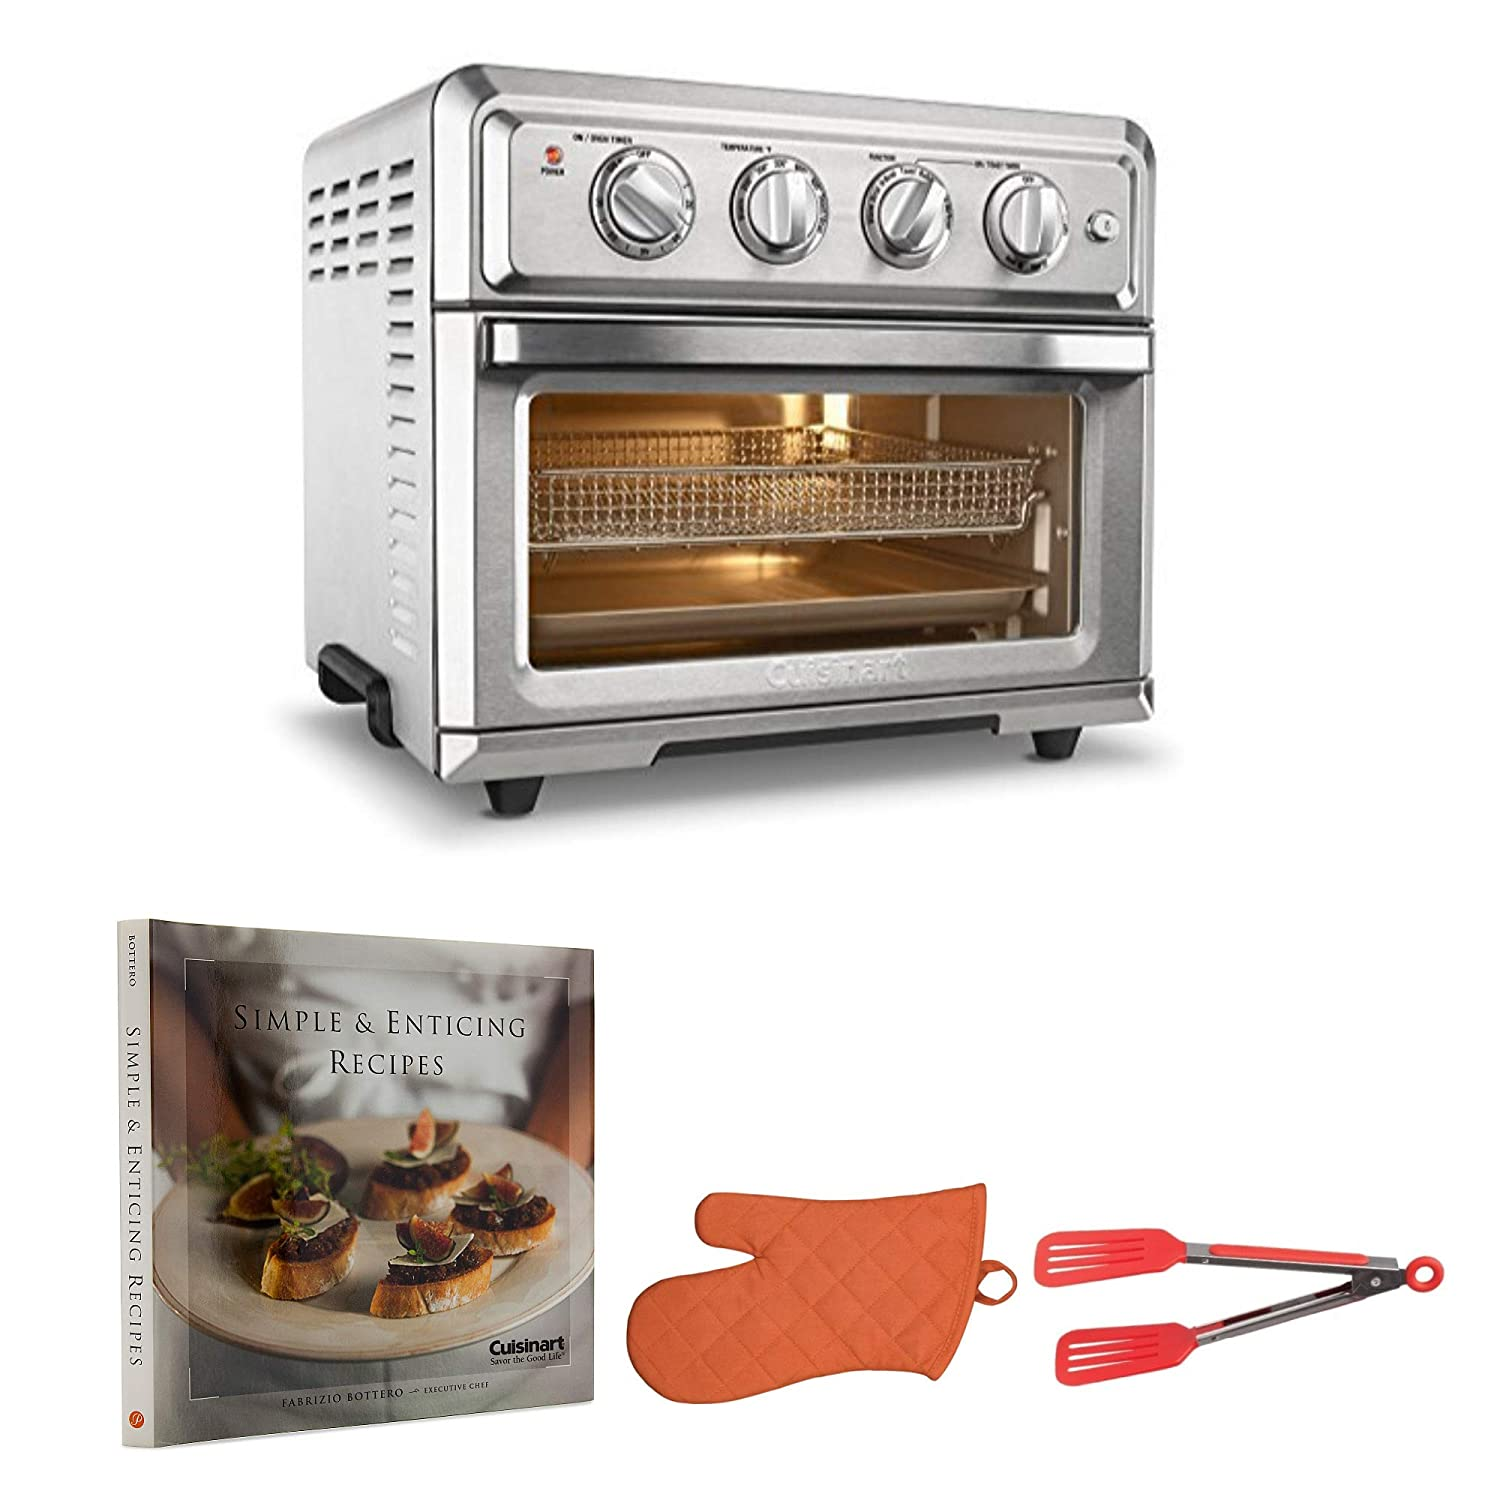 Cuisinart TOA-60 Convection Toaster Oven Air Fryer with Cookbook, Oven Mitt, and Flipper Tongs Bundle